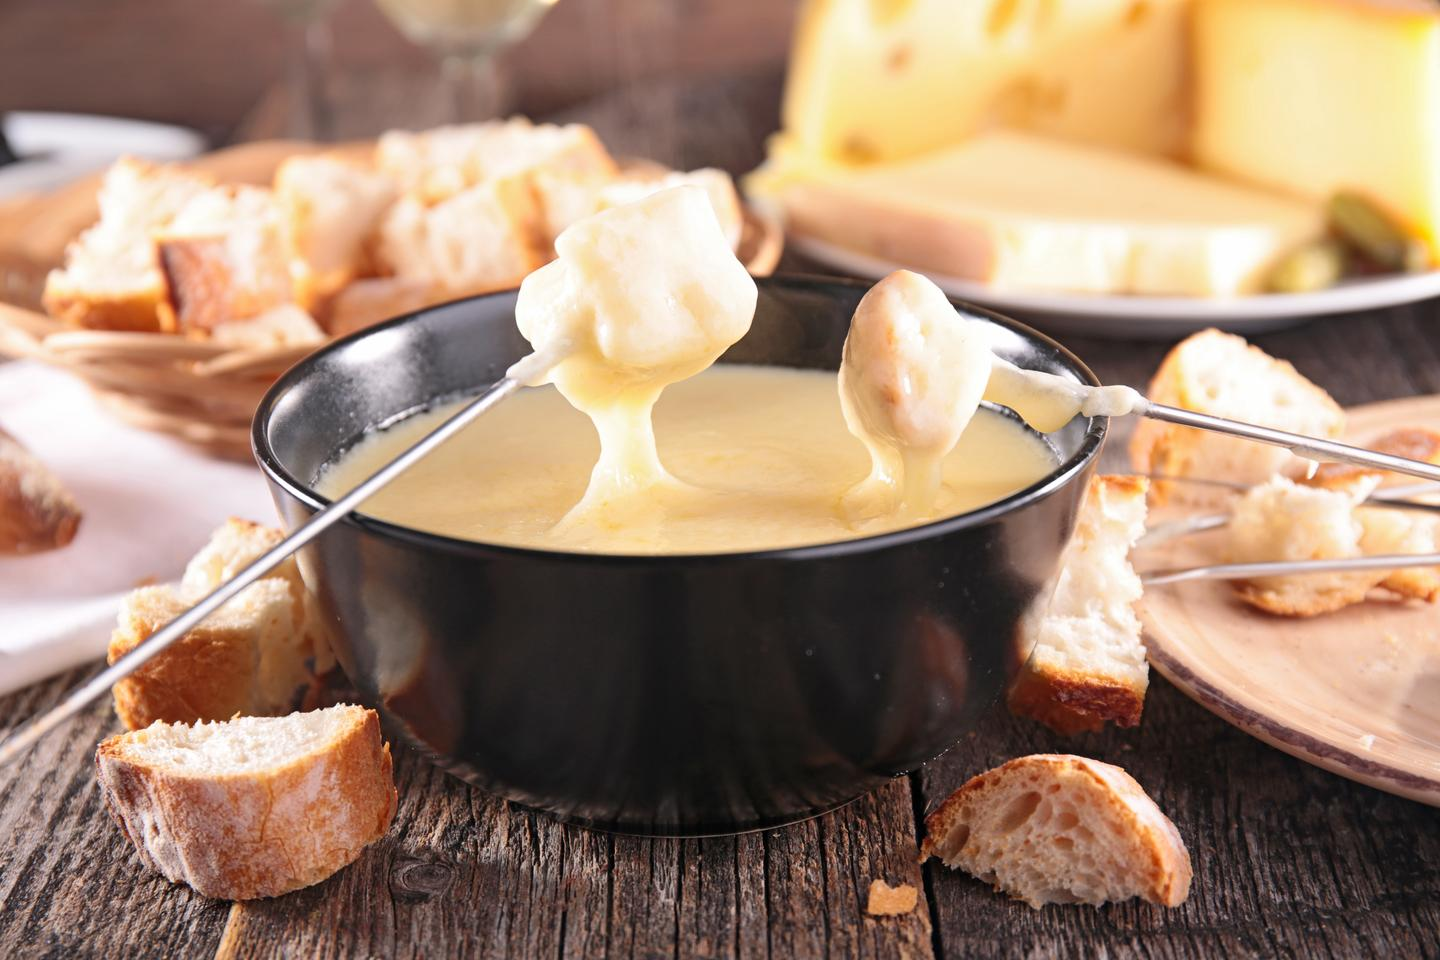 Making the perfect fondue is as much science as art